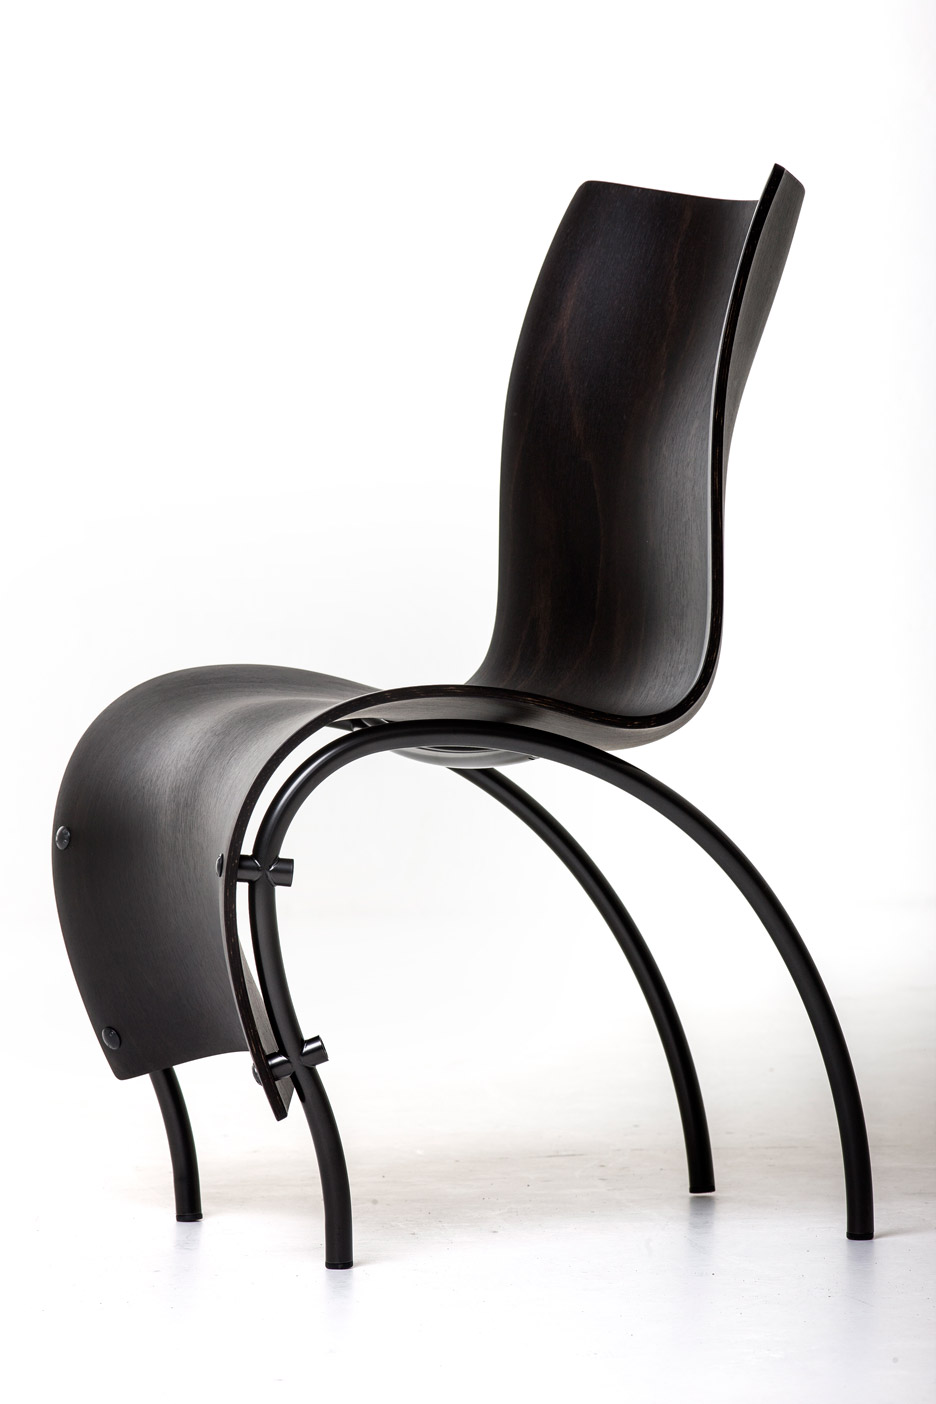 One Skin chair by Ron Arad and Moroso